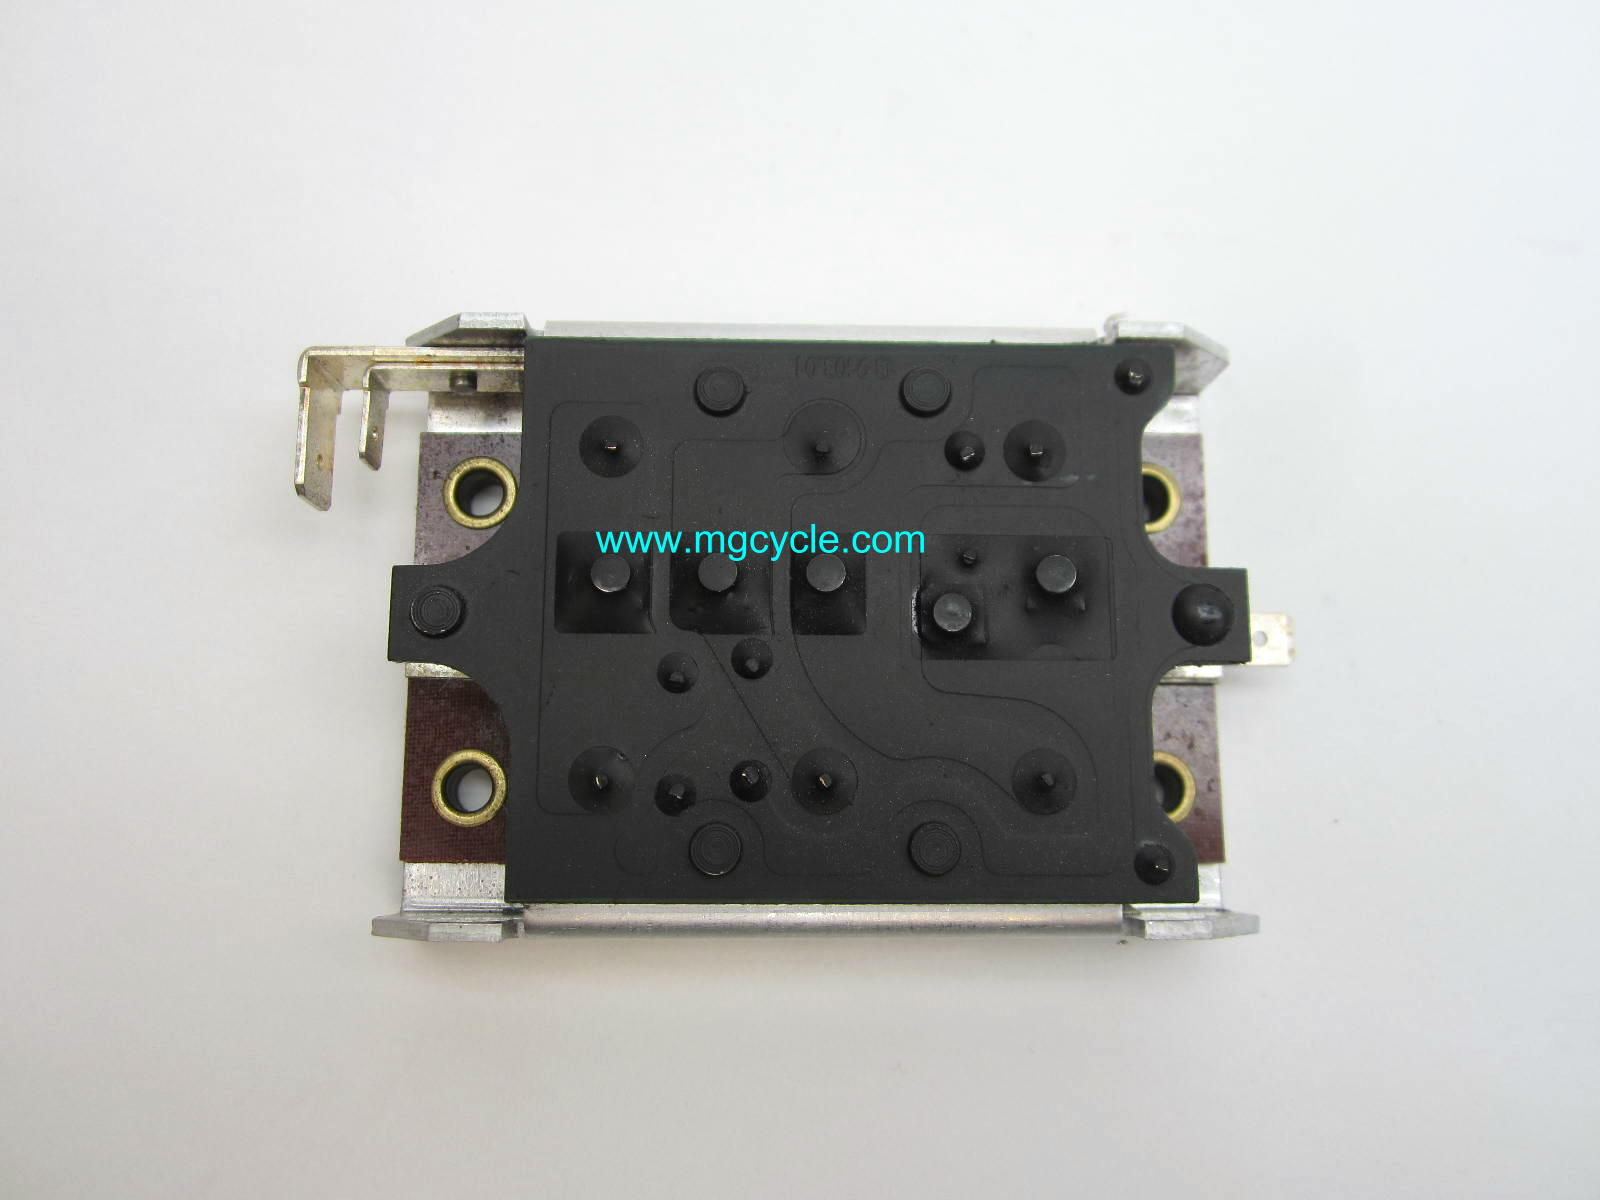 Rectifier, diode board for Bosch alternator systems, Guzzi BMW